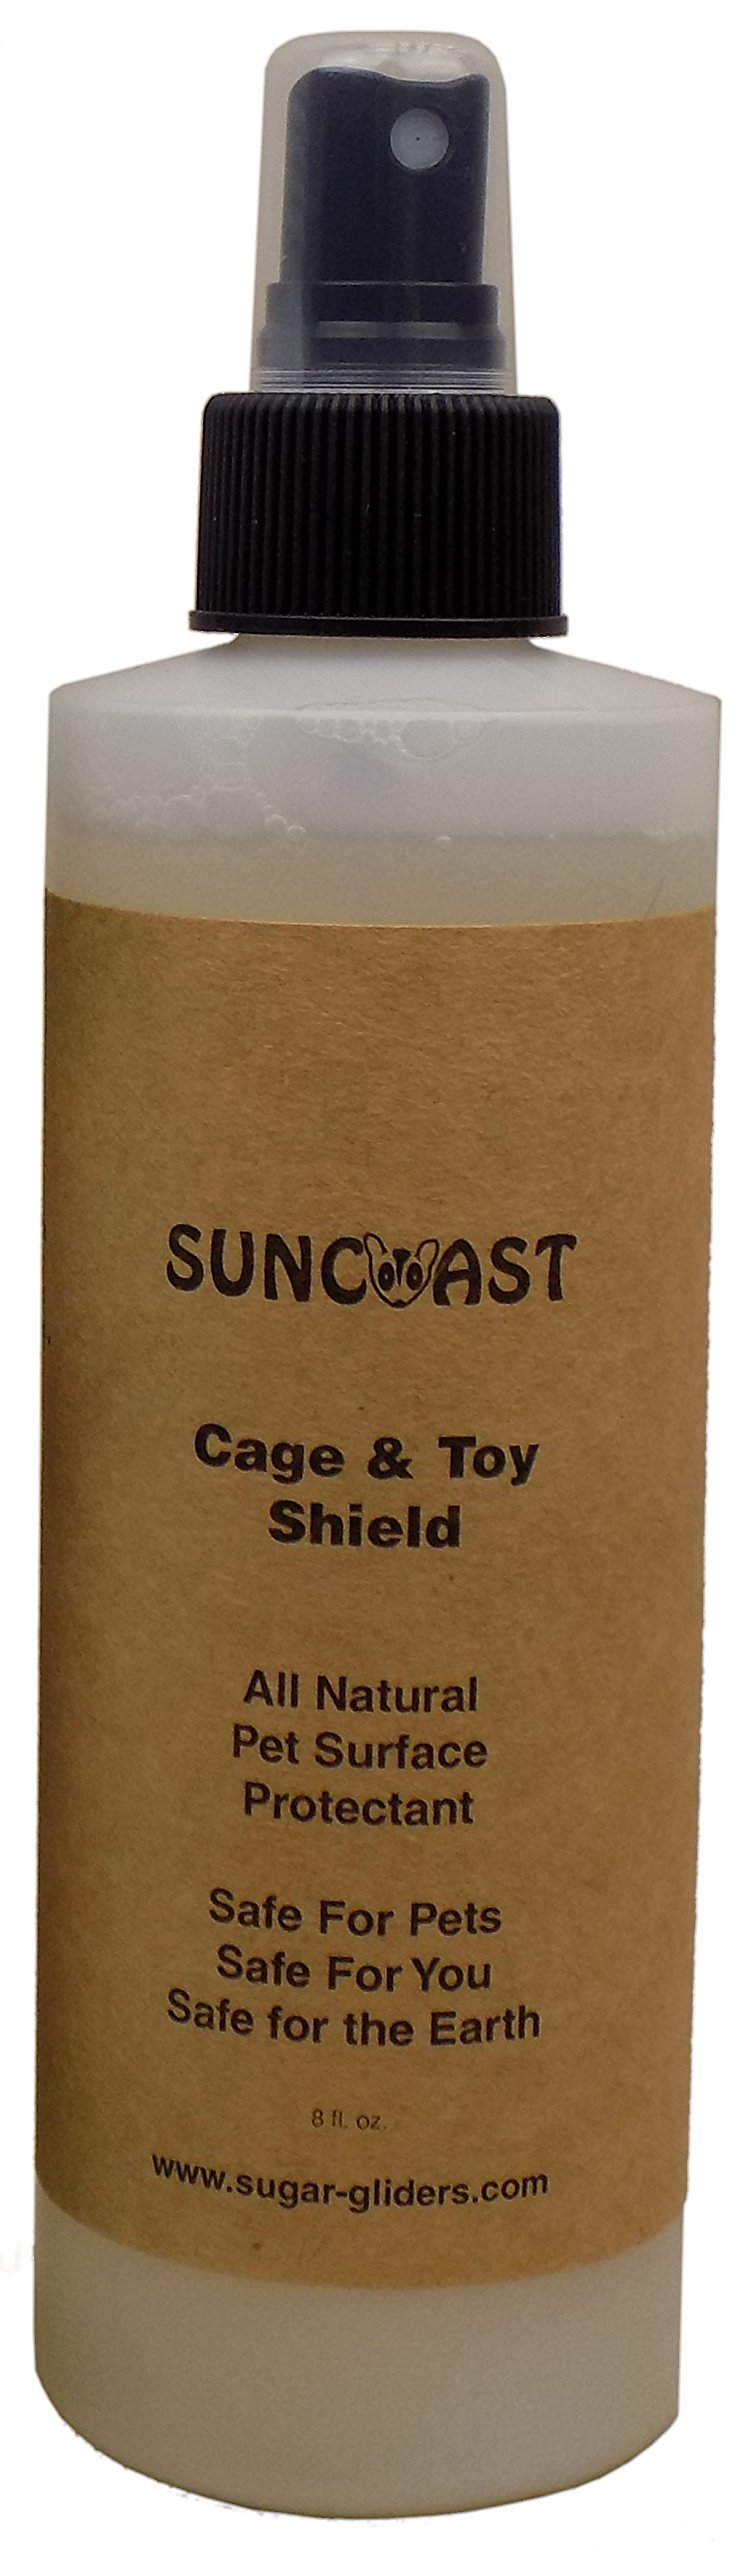 Cage & Toy Shield 8oz